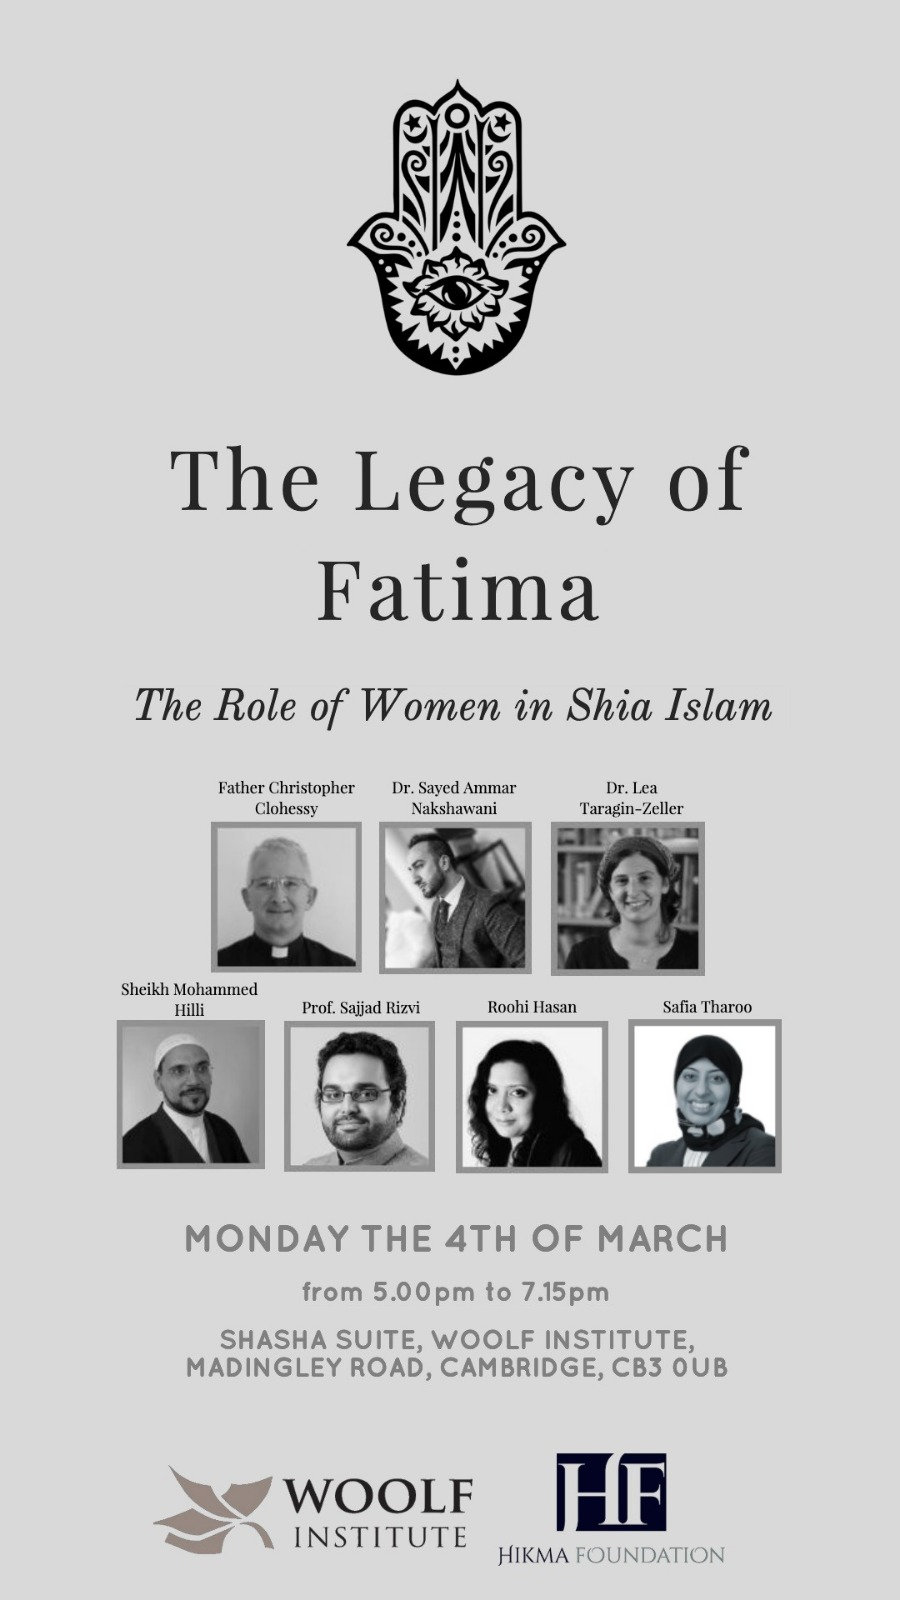 The Role of Women in Shia Islam